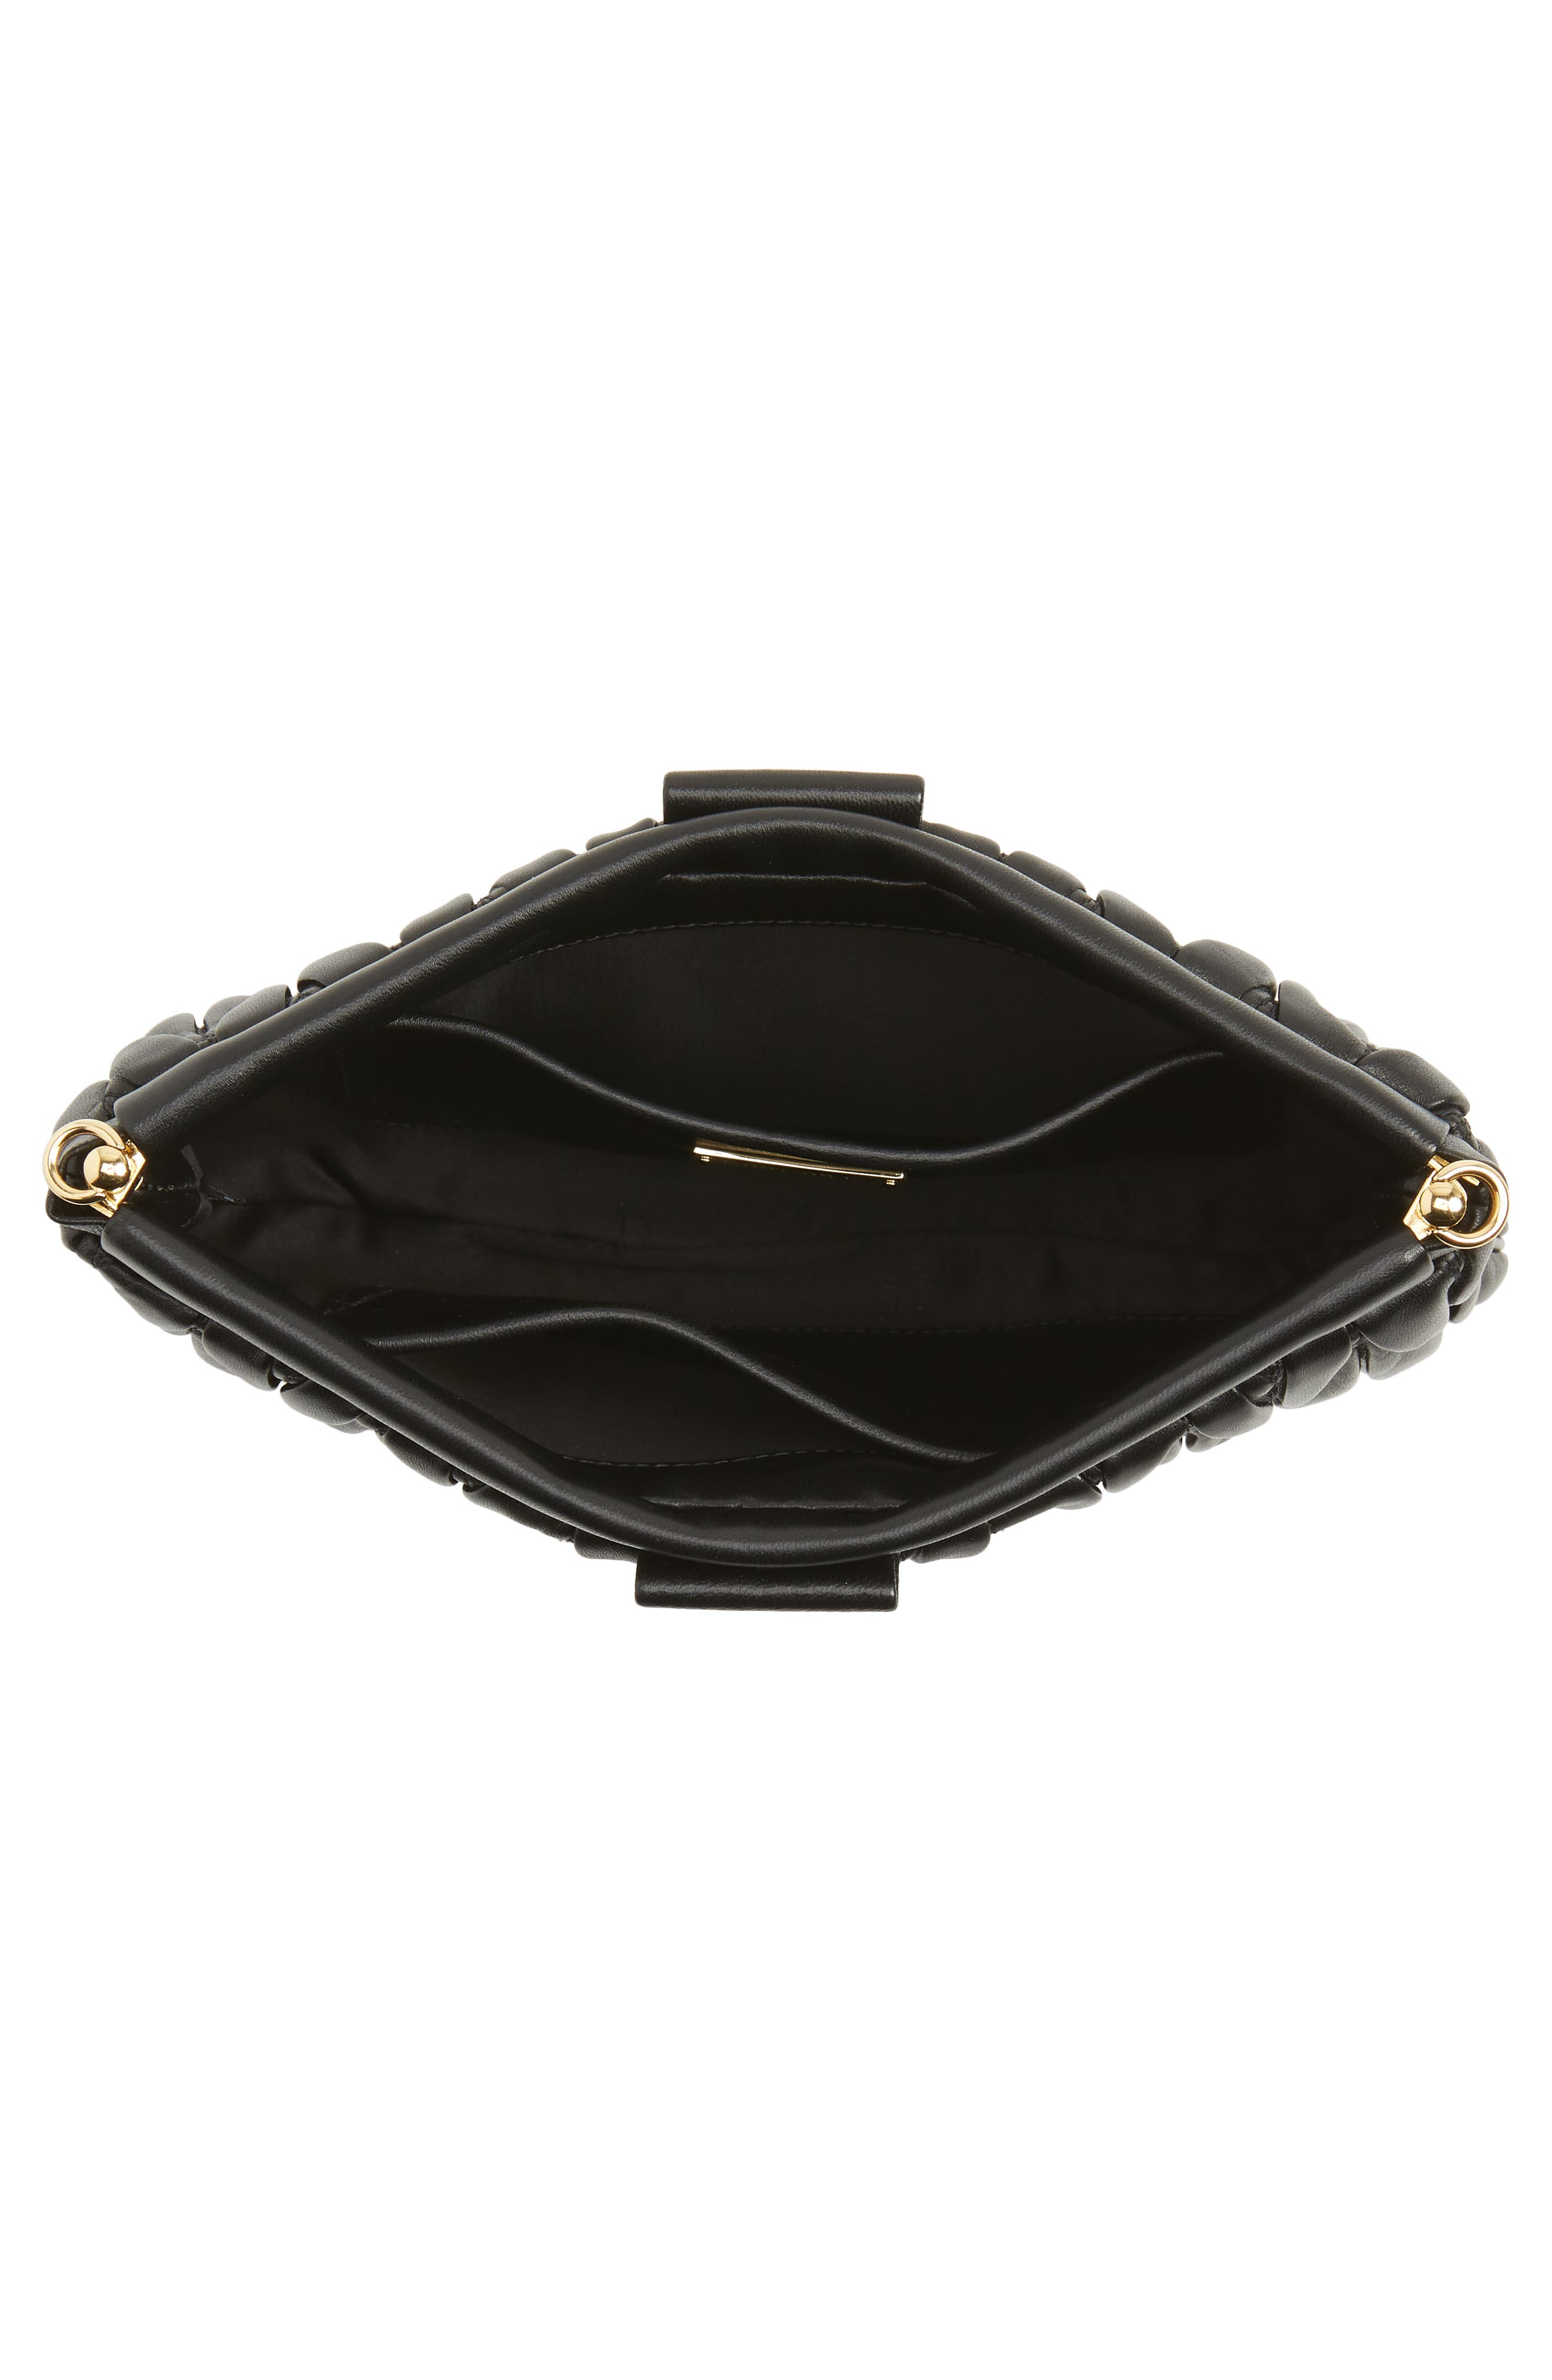 Matelassé Lambskin Leather Clutch,                             Alternate thumbnail 4, color,                             NERO